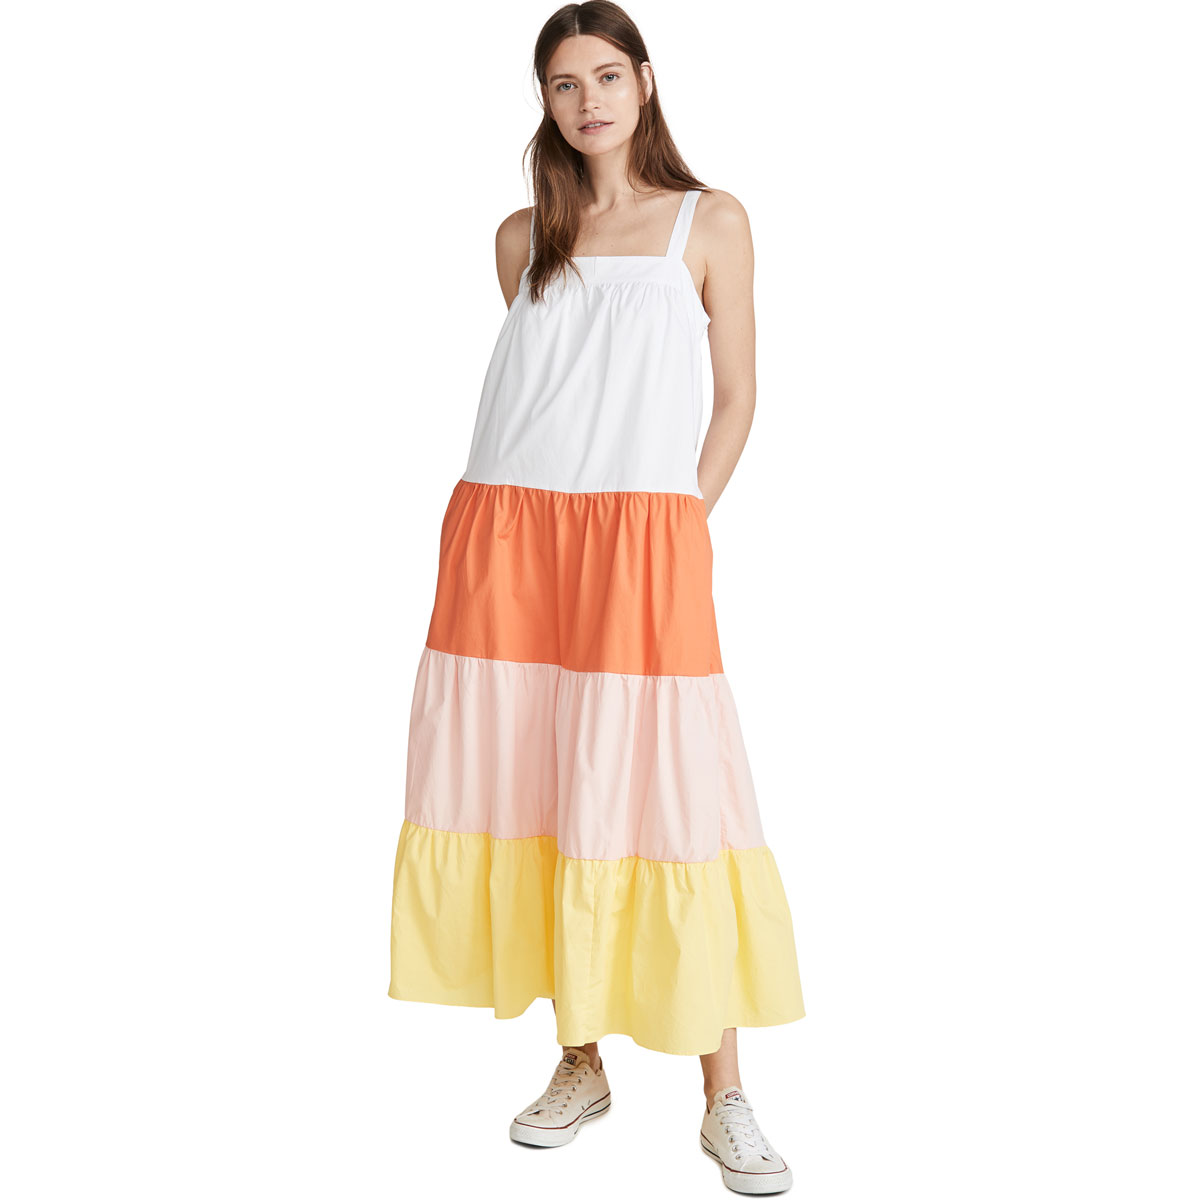 Shop 15 Comfortable Sundresses To Work From Home In